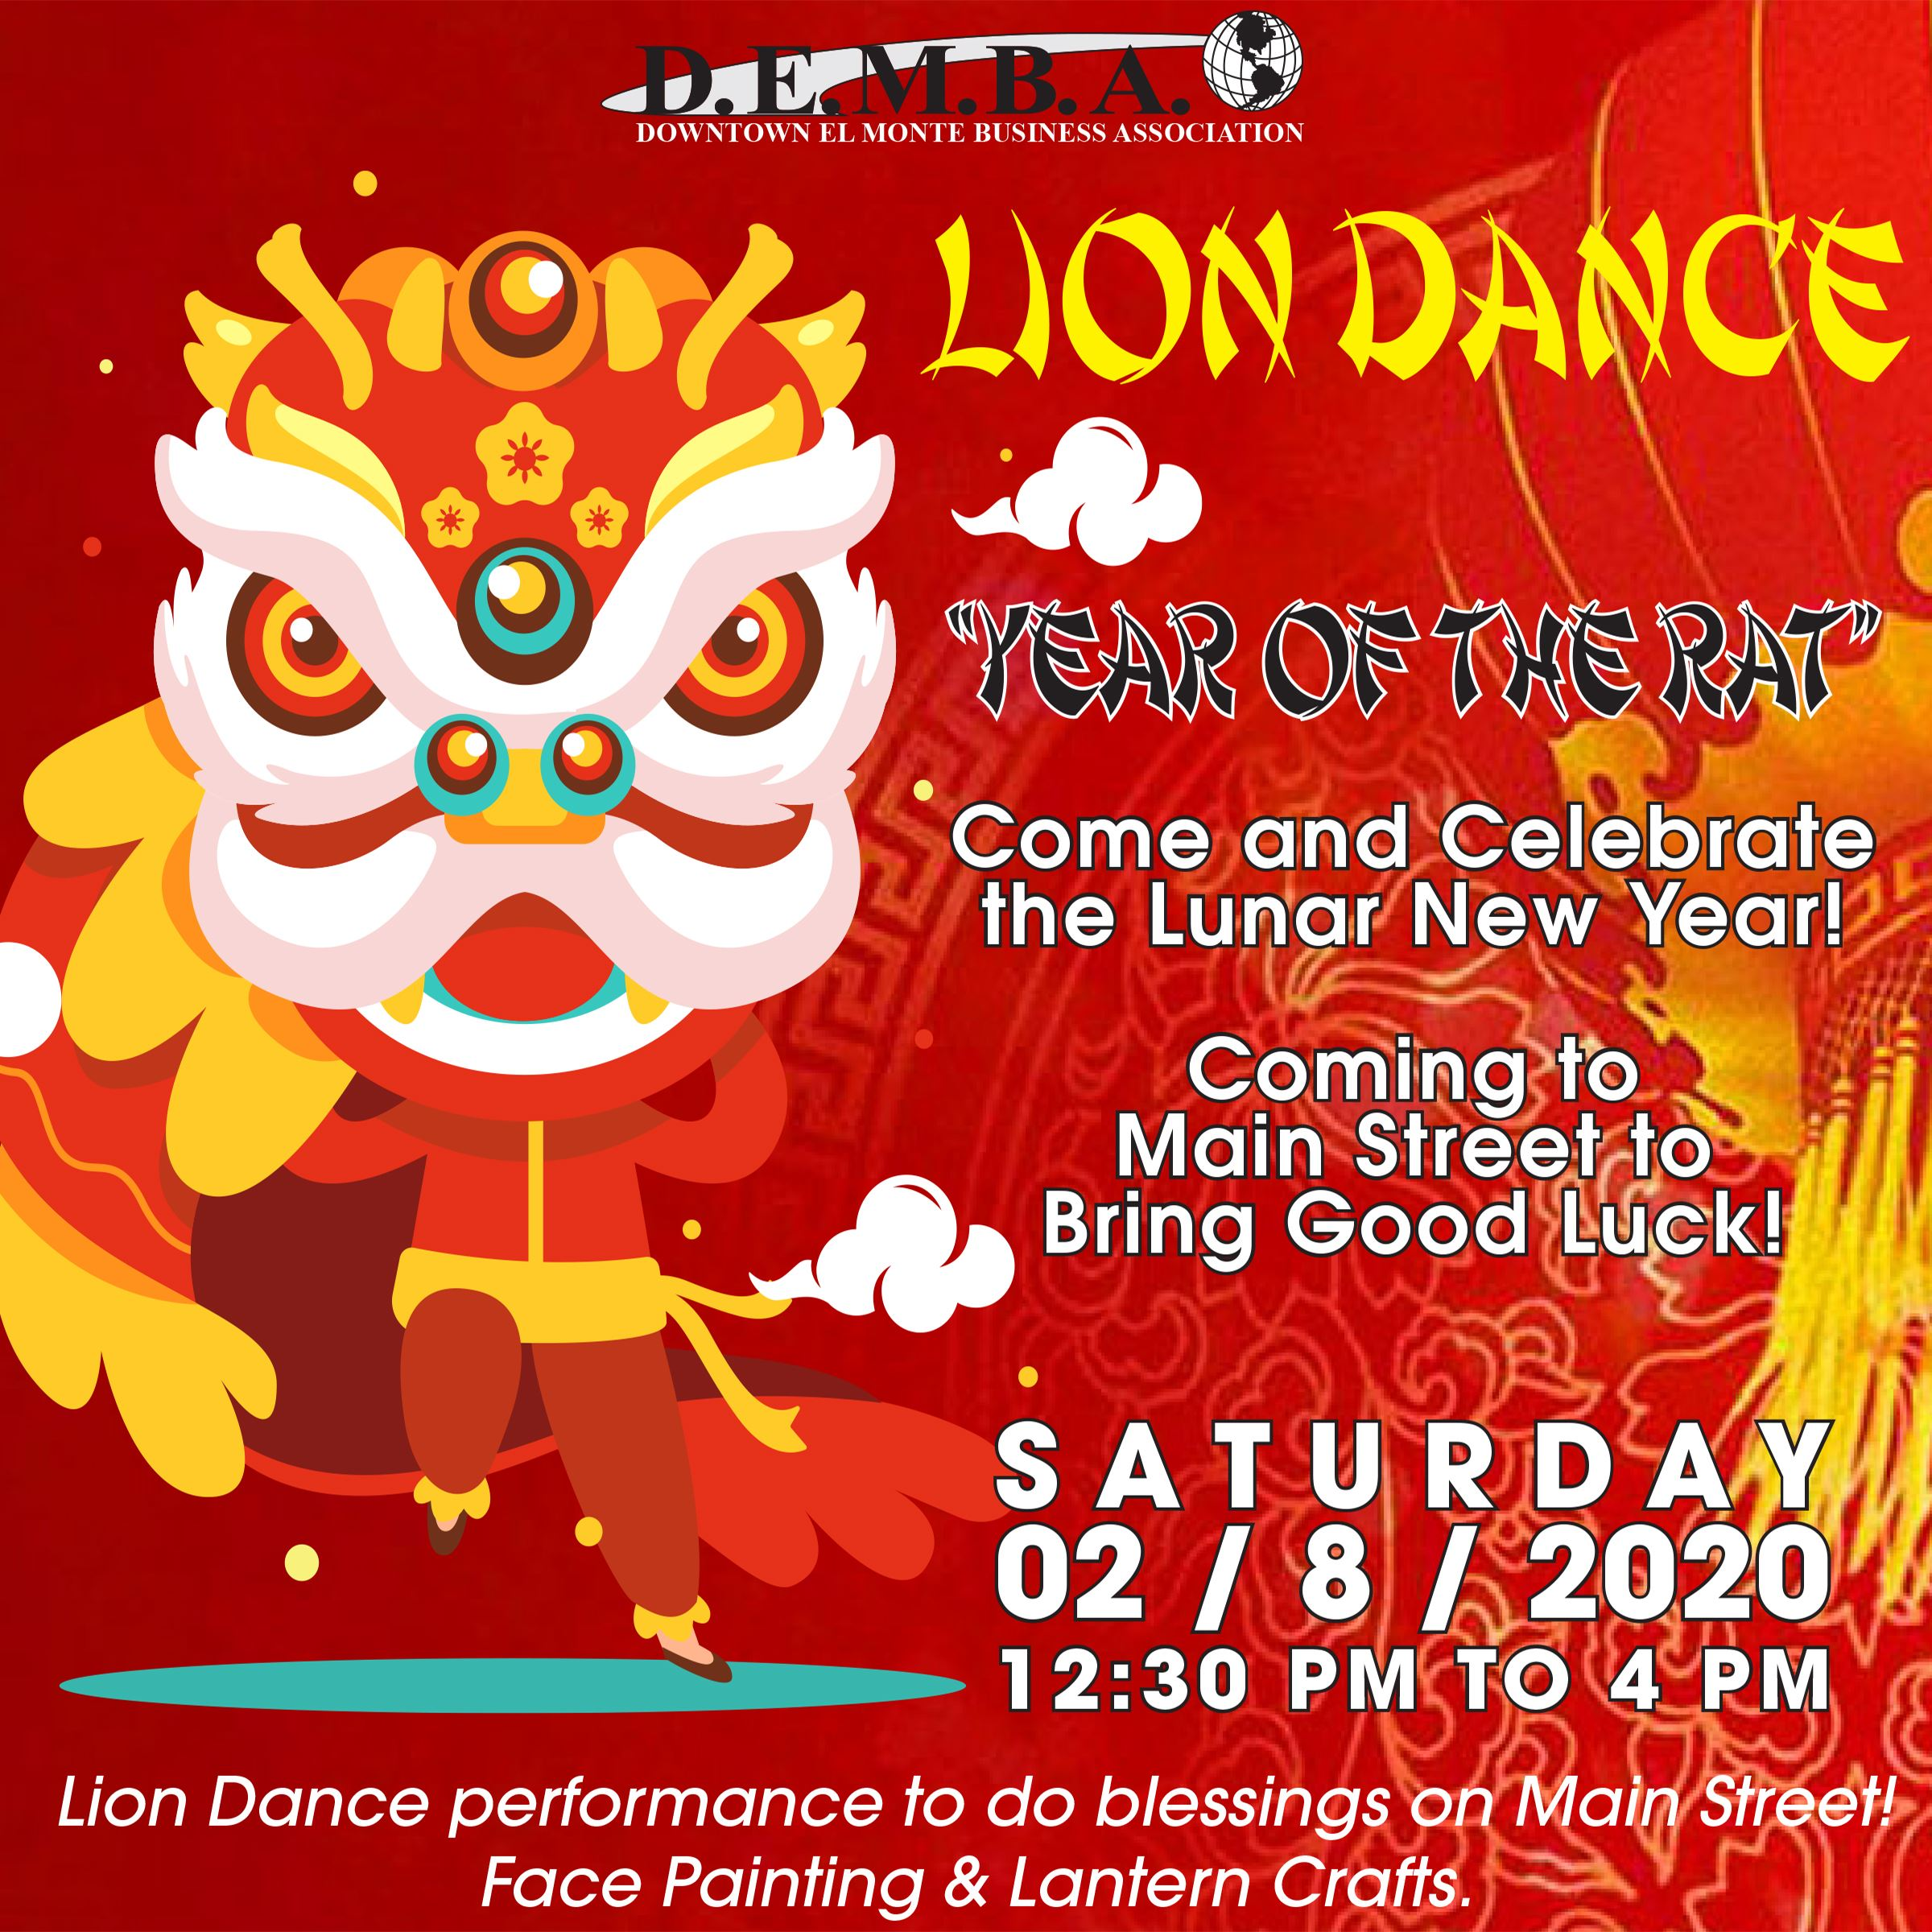 2nd Proof - DEMBA_2020 Lion Dance and Create A Valentine FLYERhjk